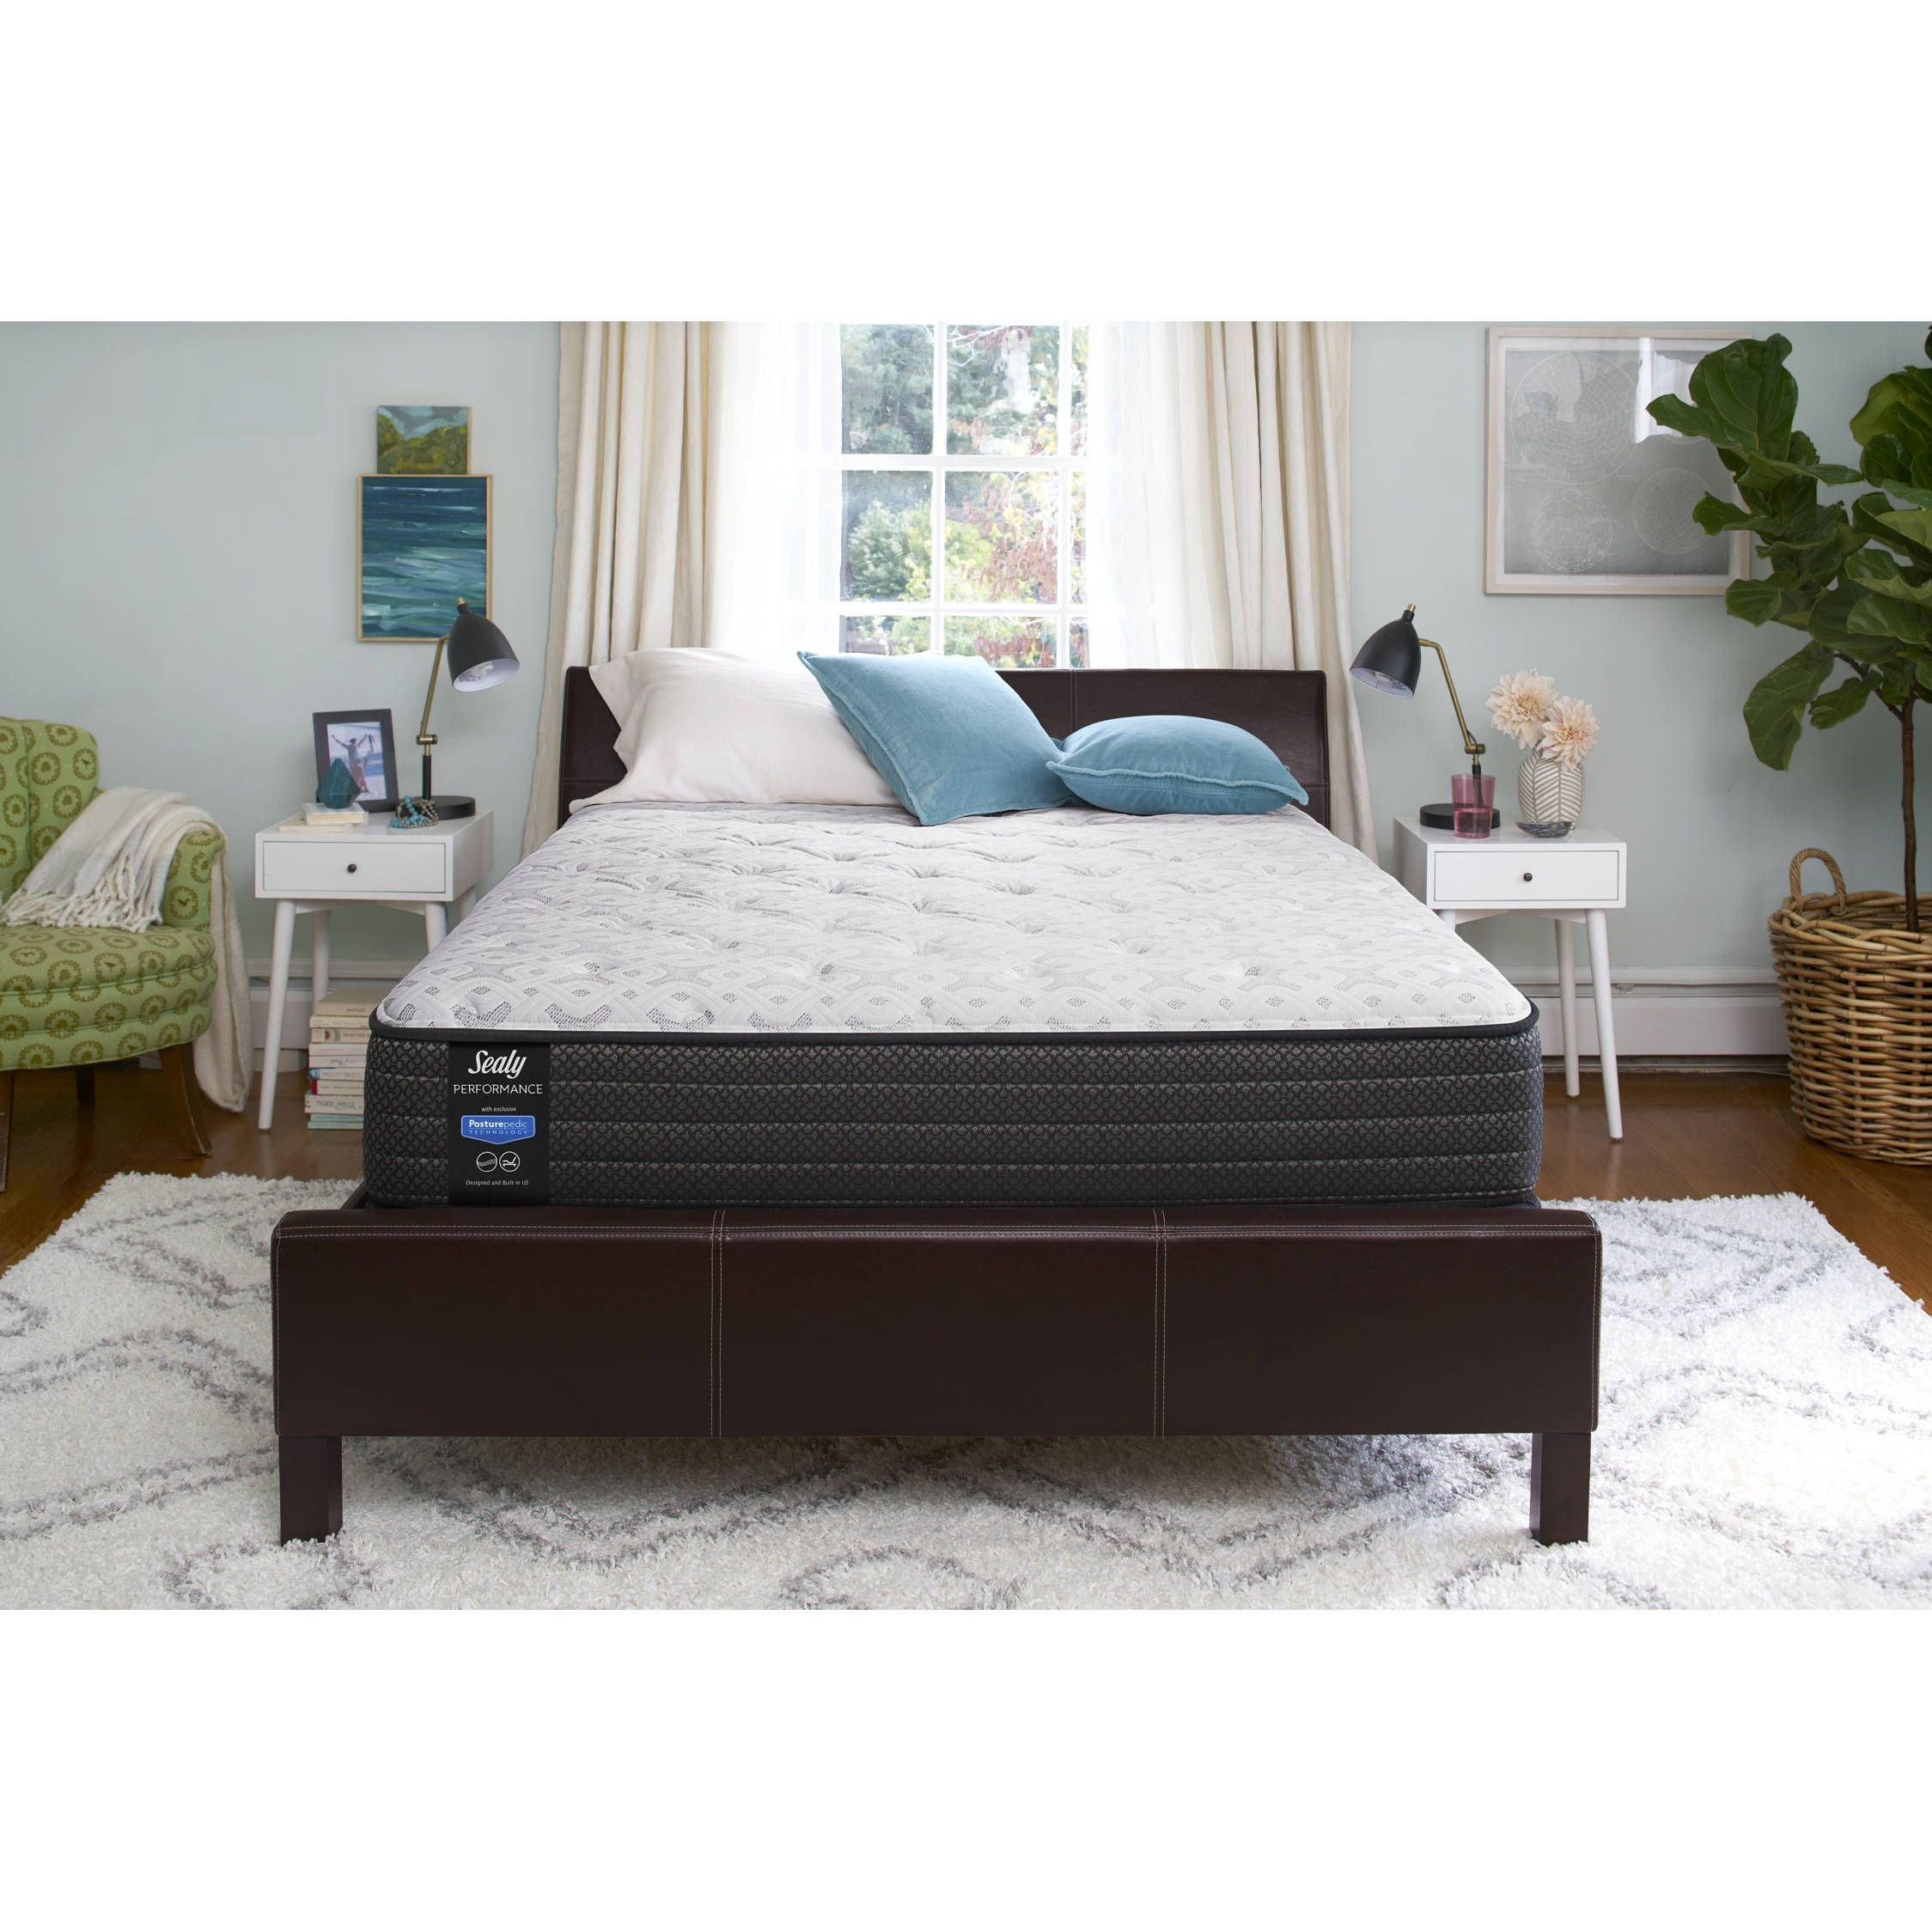 new ikea bed frame sealy mattress insured by ross